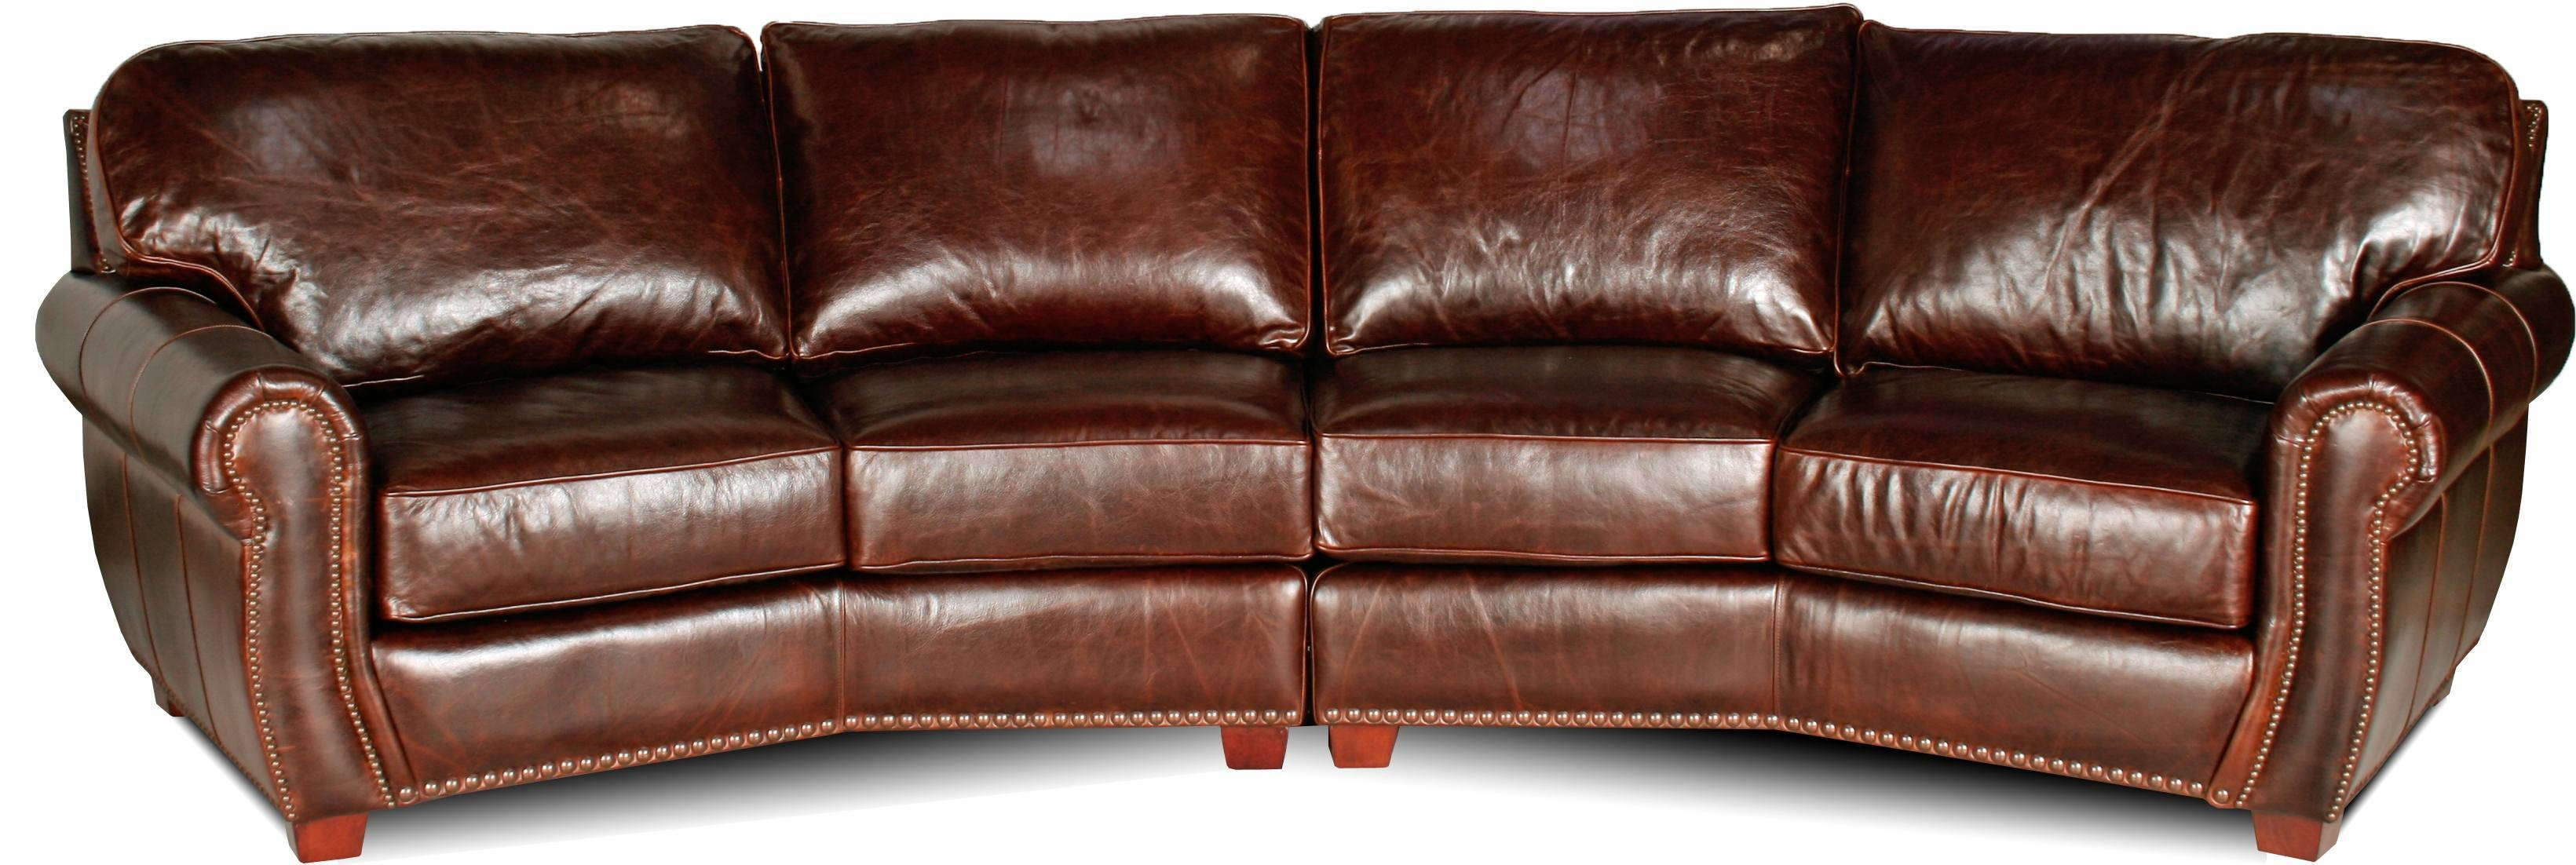 Where / What Is The Cheapest Way To Purchase A Leather Sofa? | The With 4 Seat Leather Sofas (View 7 of 30)